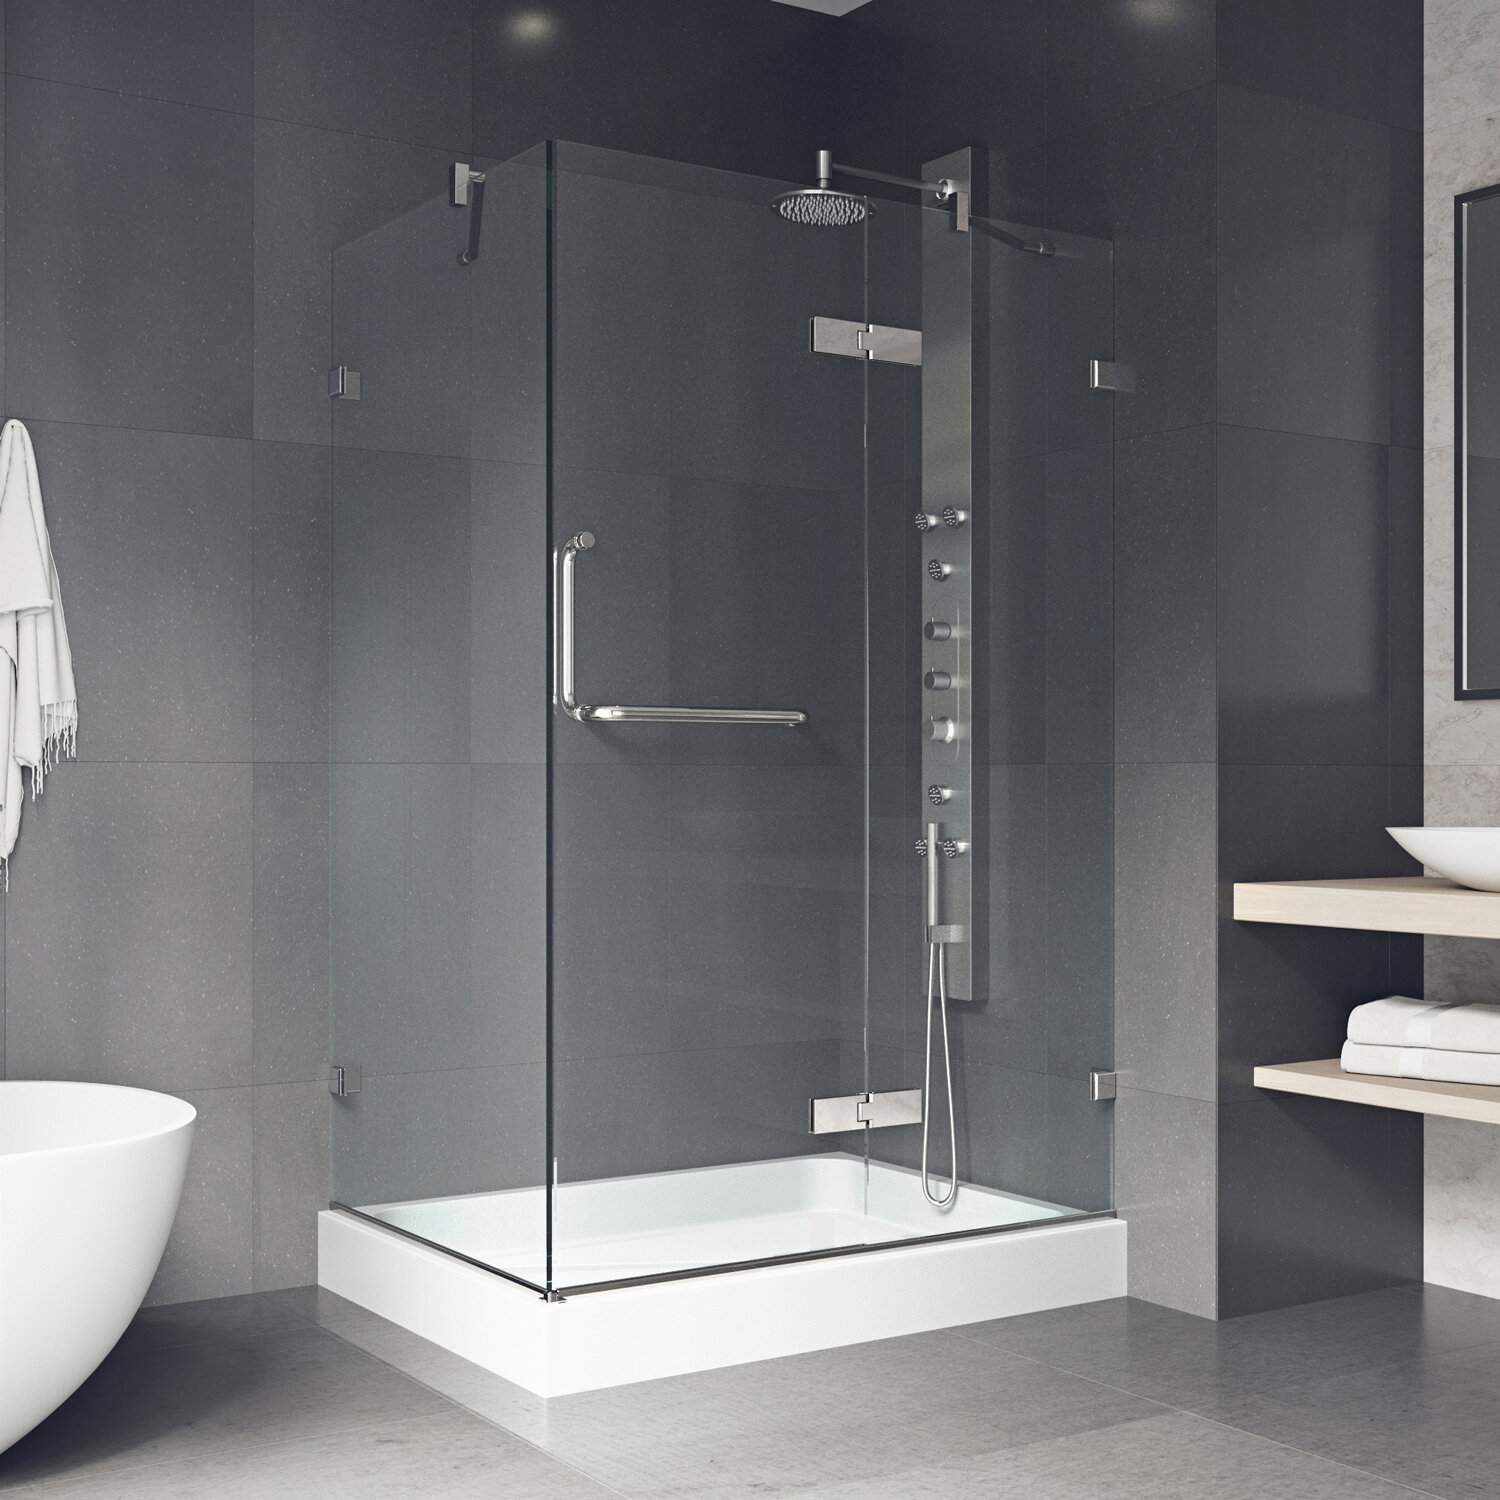 in tides shower king semi framed doors neo door at frameless angle adorable on vigo fascinating installations x foremost